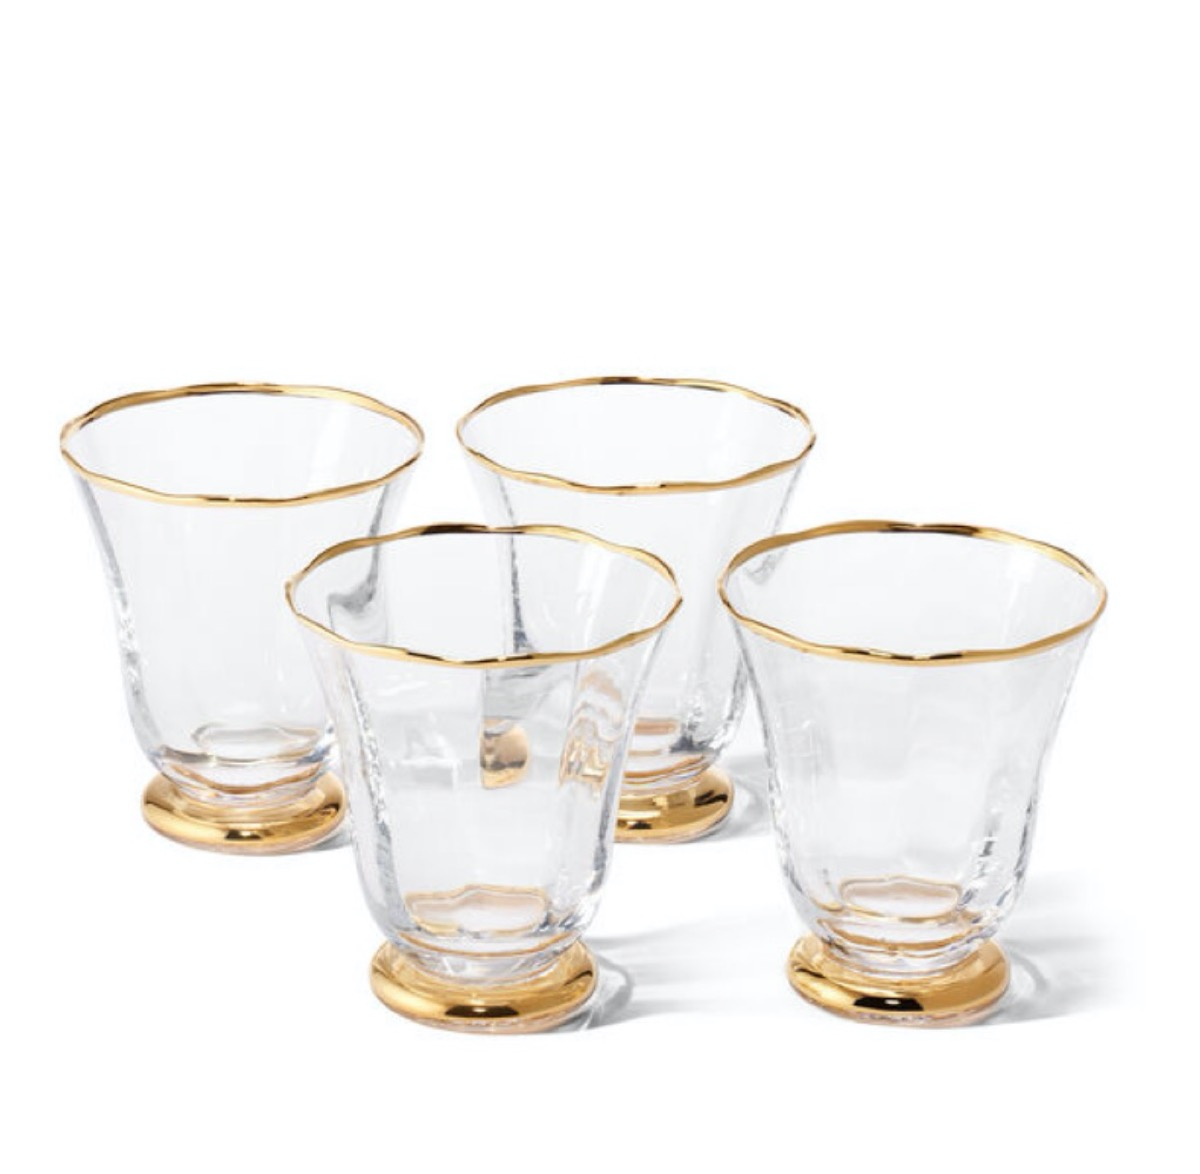 four short glasses with gold rims